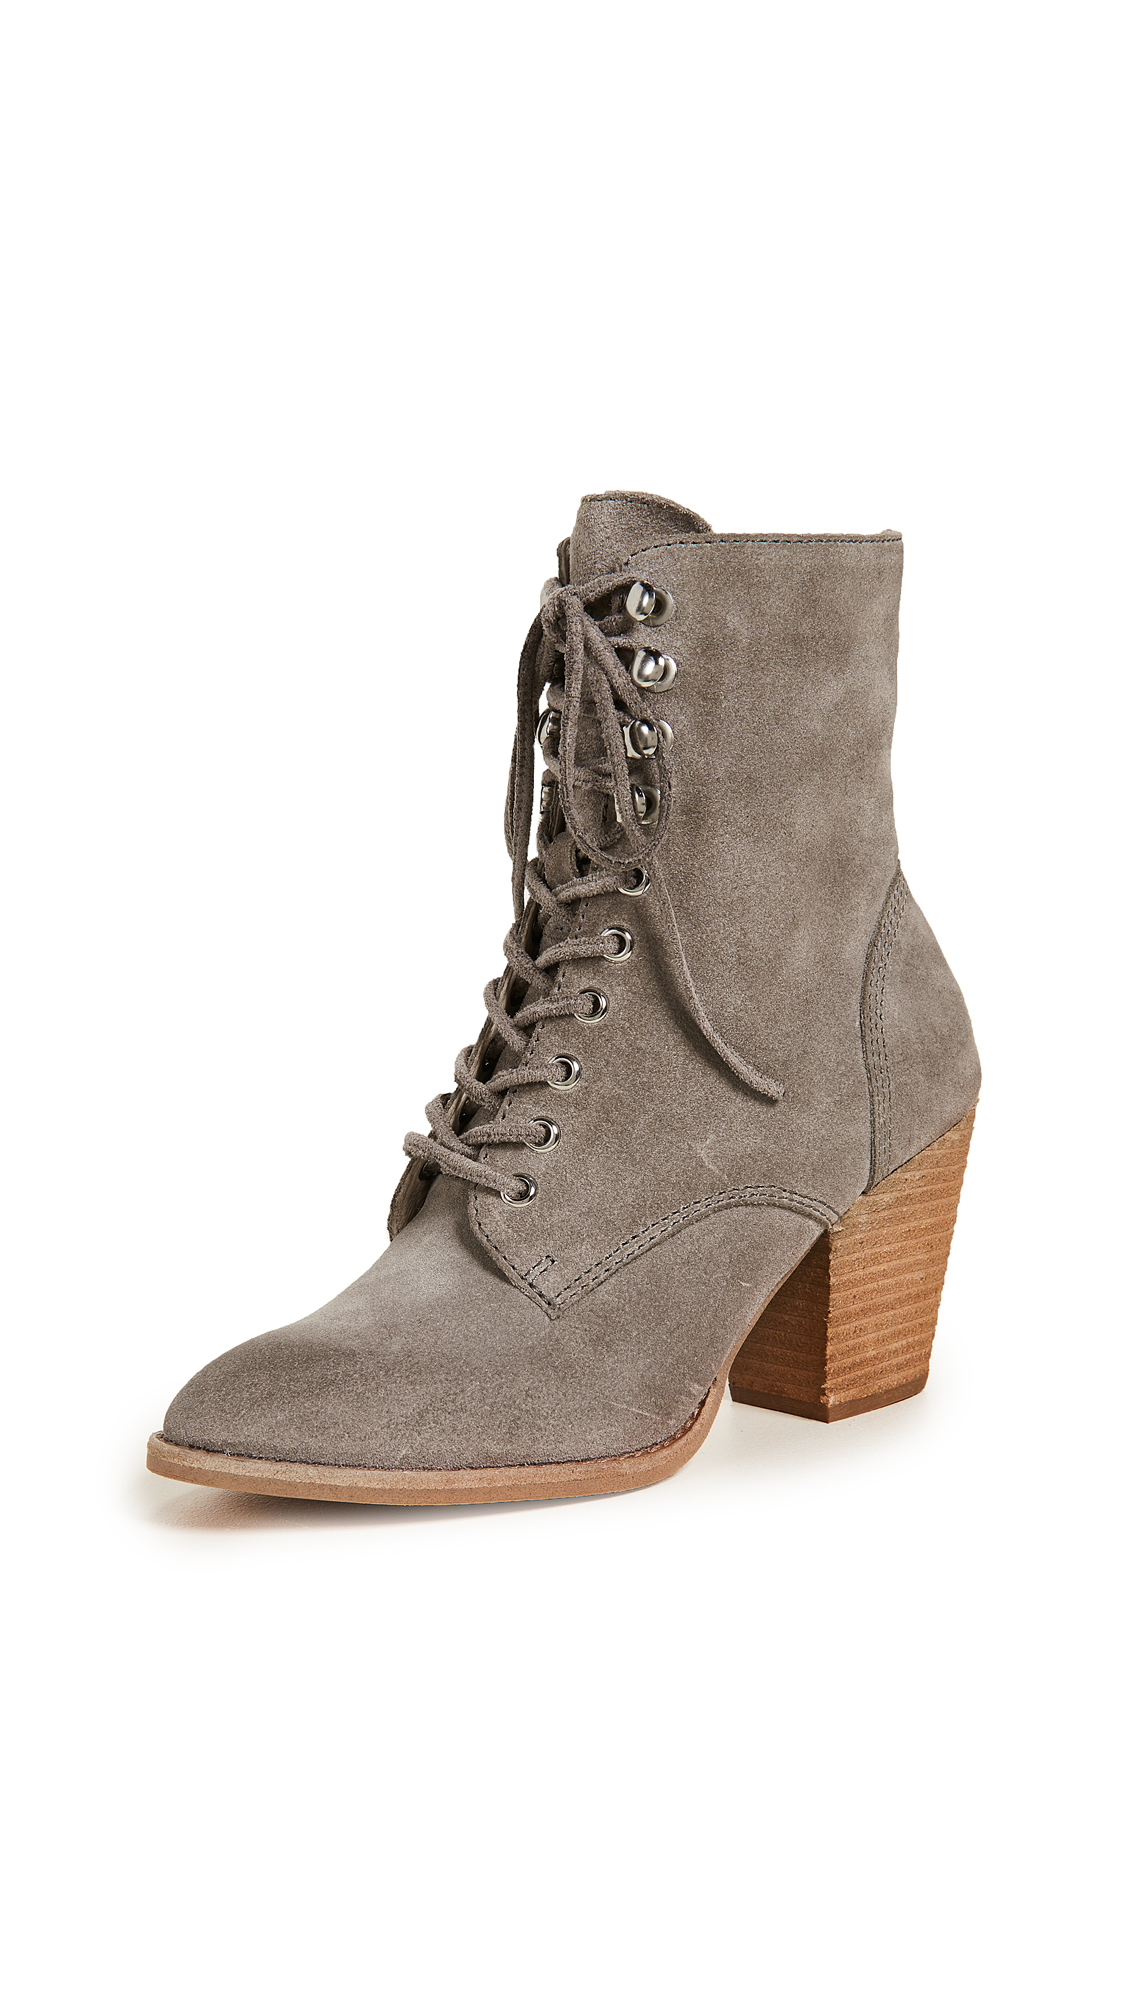 Jeffrey Campbell Elman Lace Up Boots - Taupe